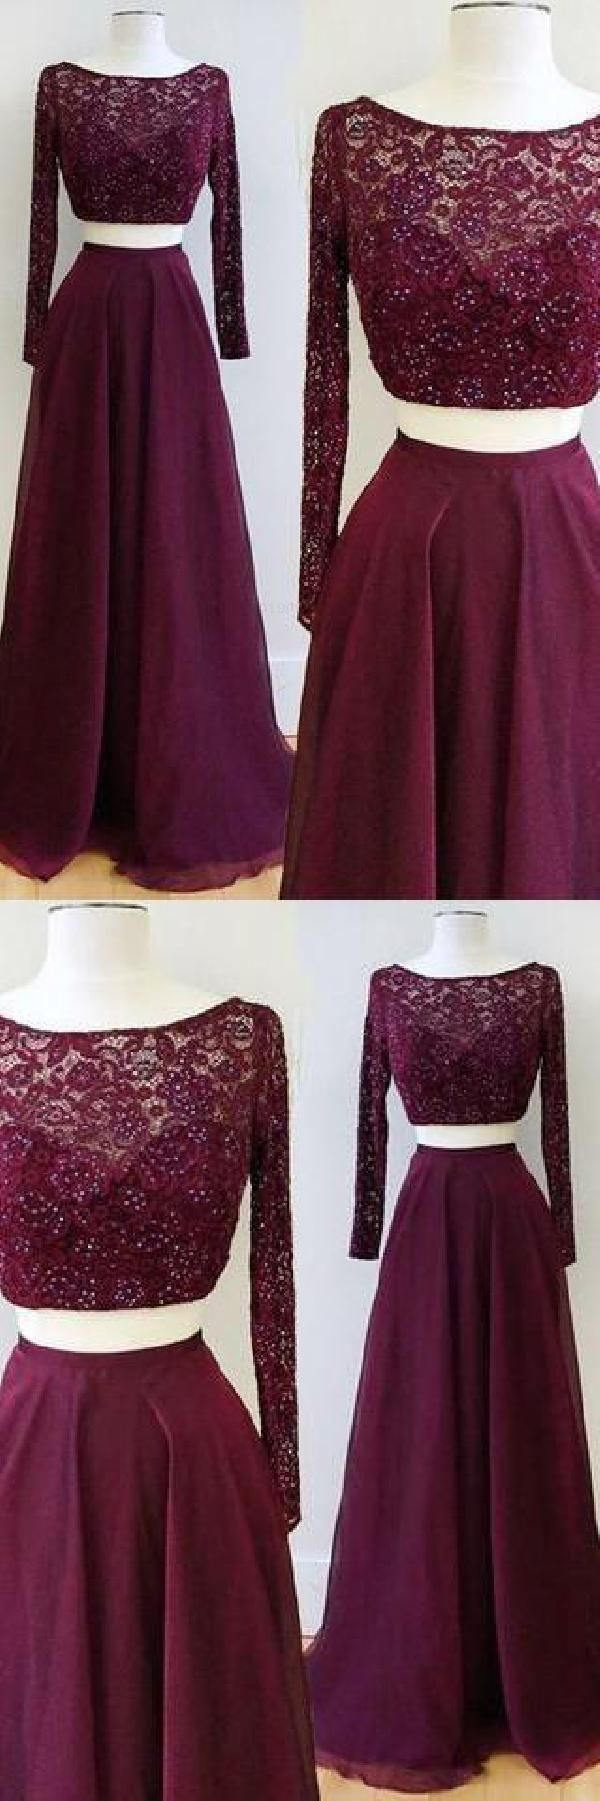 7d12e406acfe9 Two Piece Burgundy Bateau Long Sleeves Floor-Length Prom Dress with Lace  Beading Prom Dresses Two Piece, Lace Prom Dresses, Prom Dresses, Prom  Dresses With ...